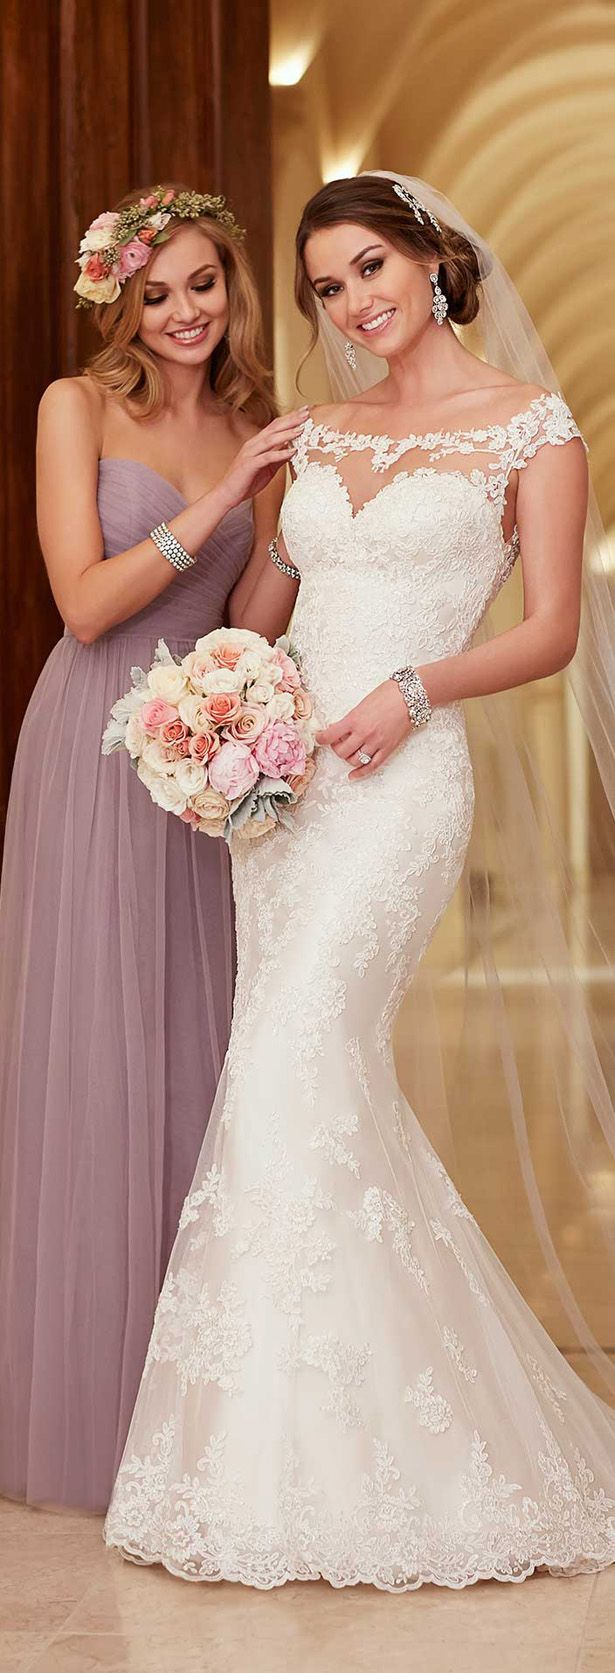 1000 ideas about mauve bridesmaid dresses on pinterest for The notebook wedding dress